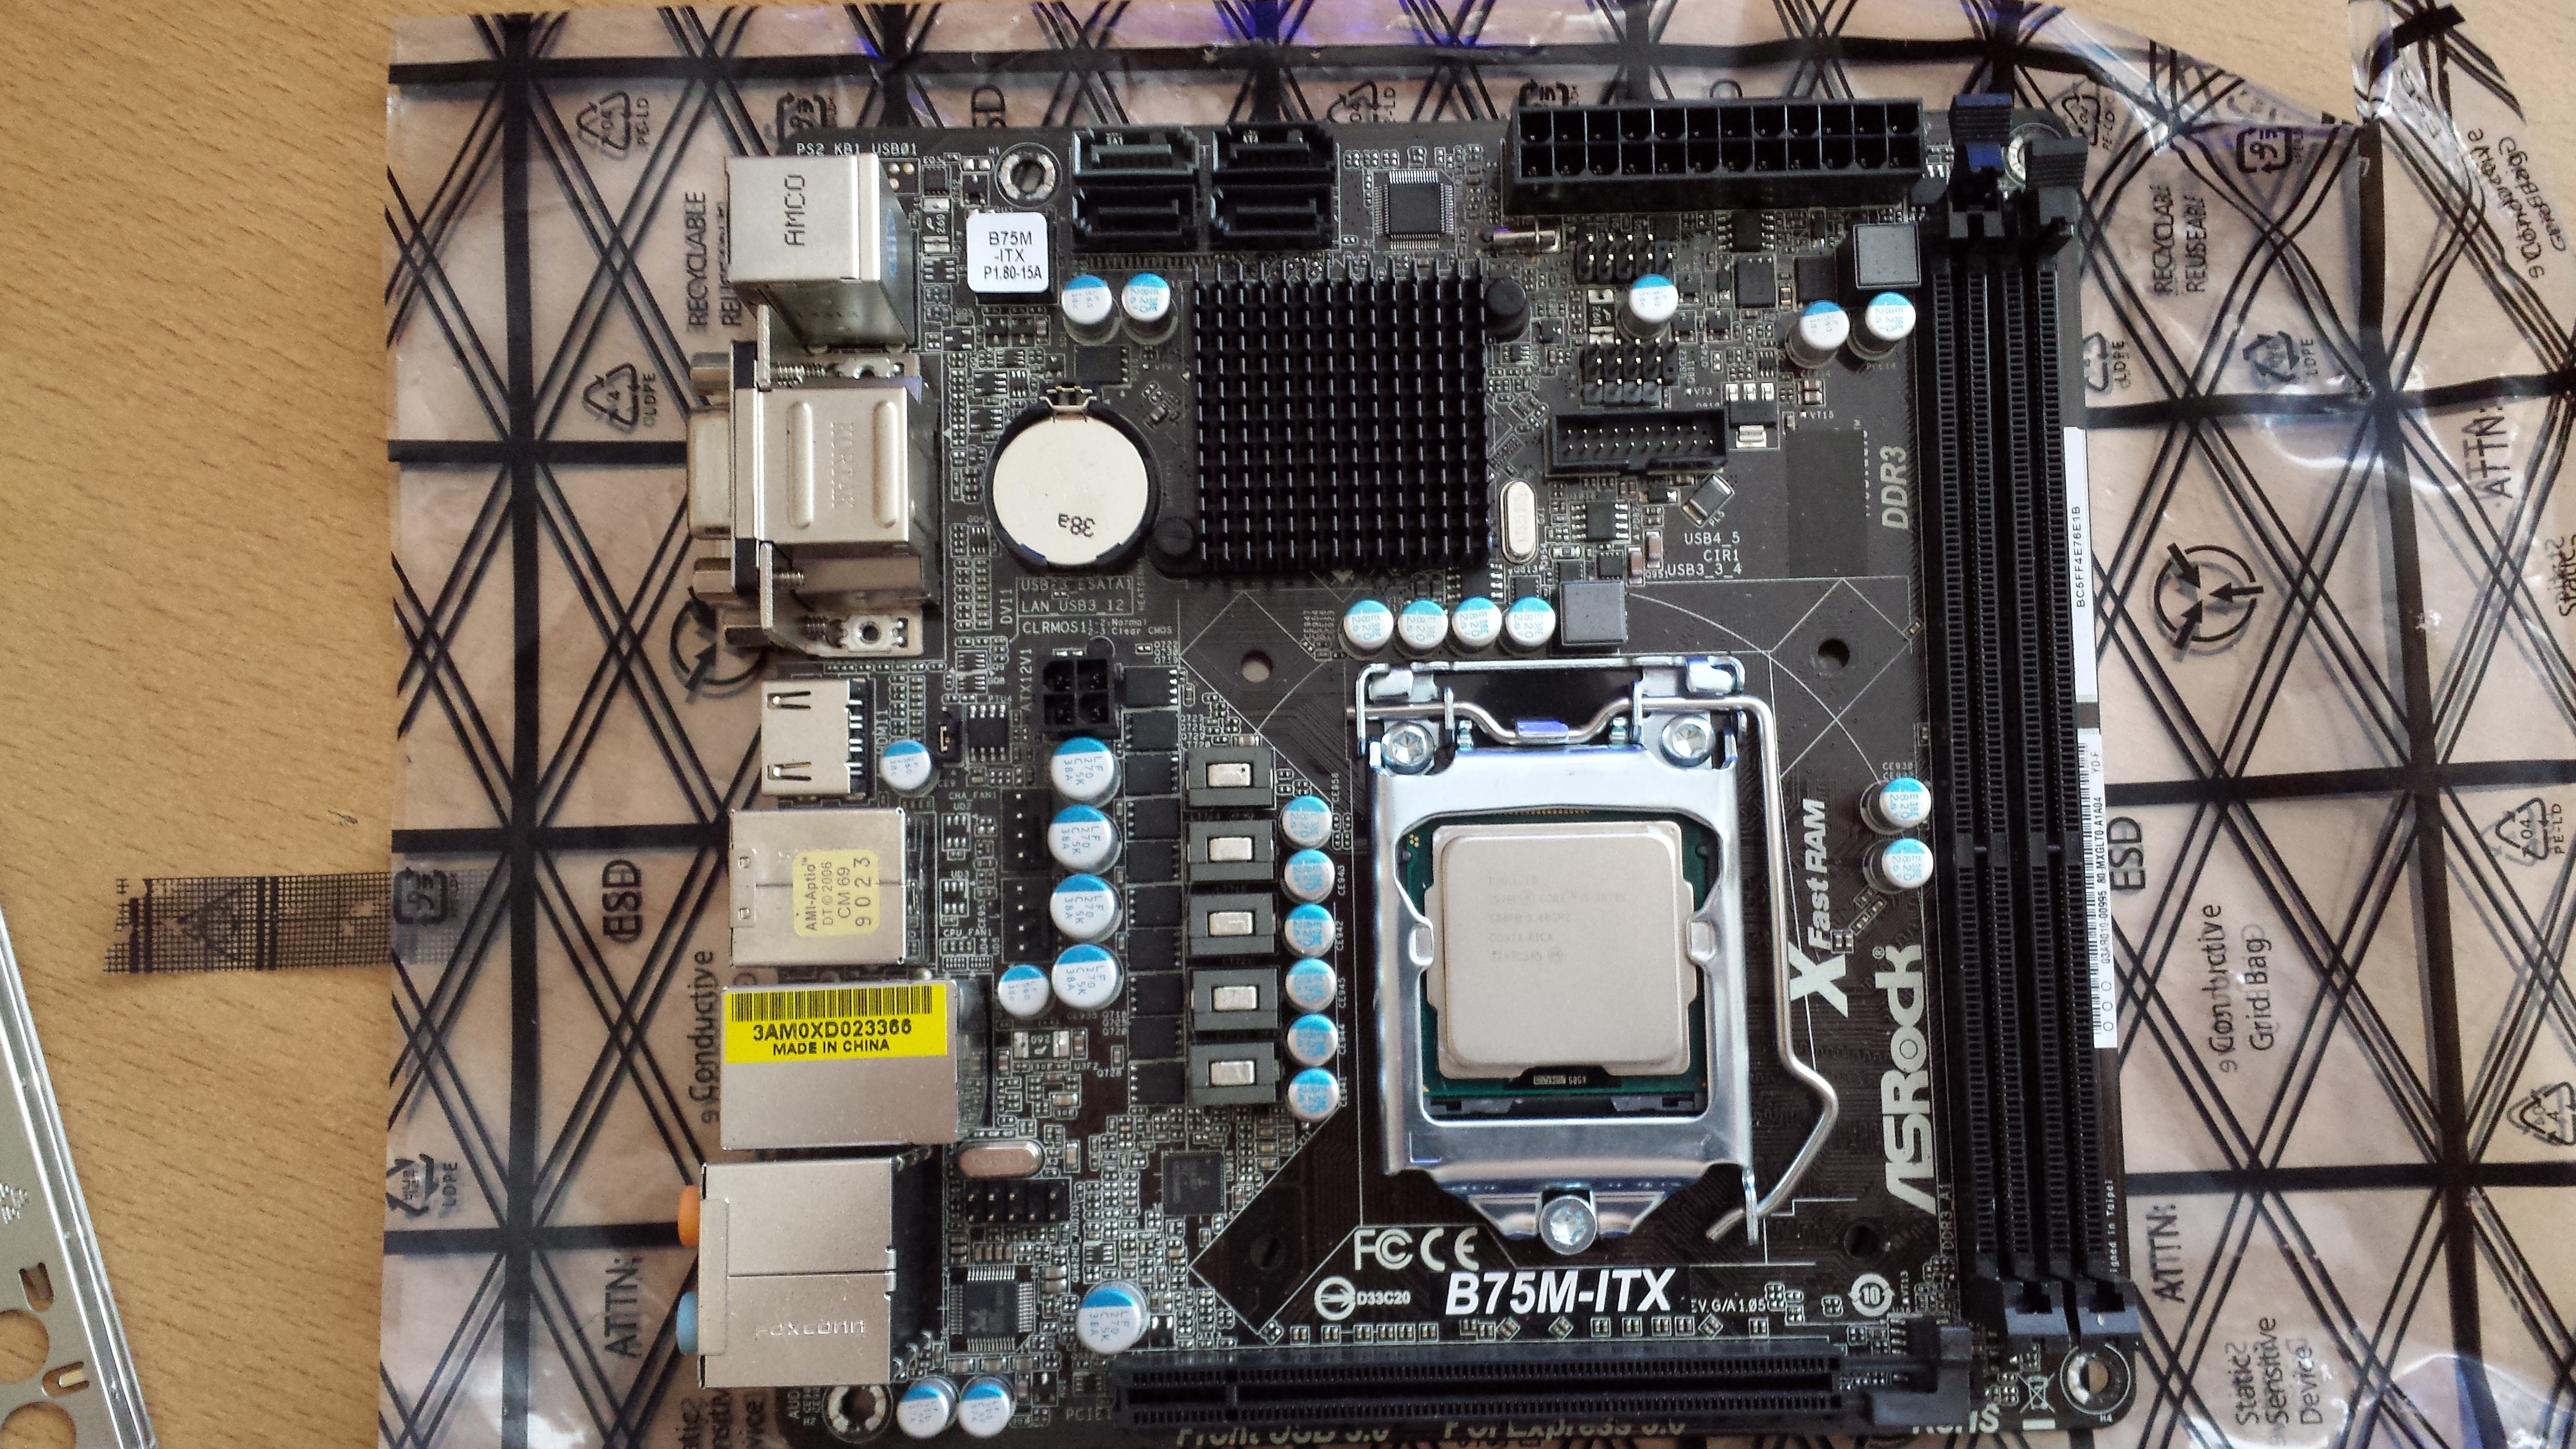 Sell CPU and motherboard 140pounds + delivery more info in PM